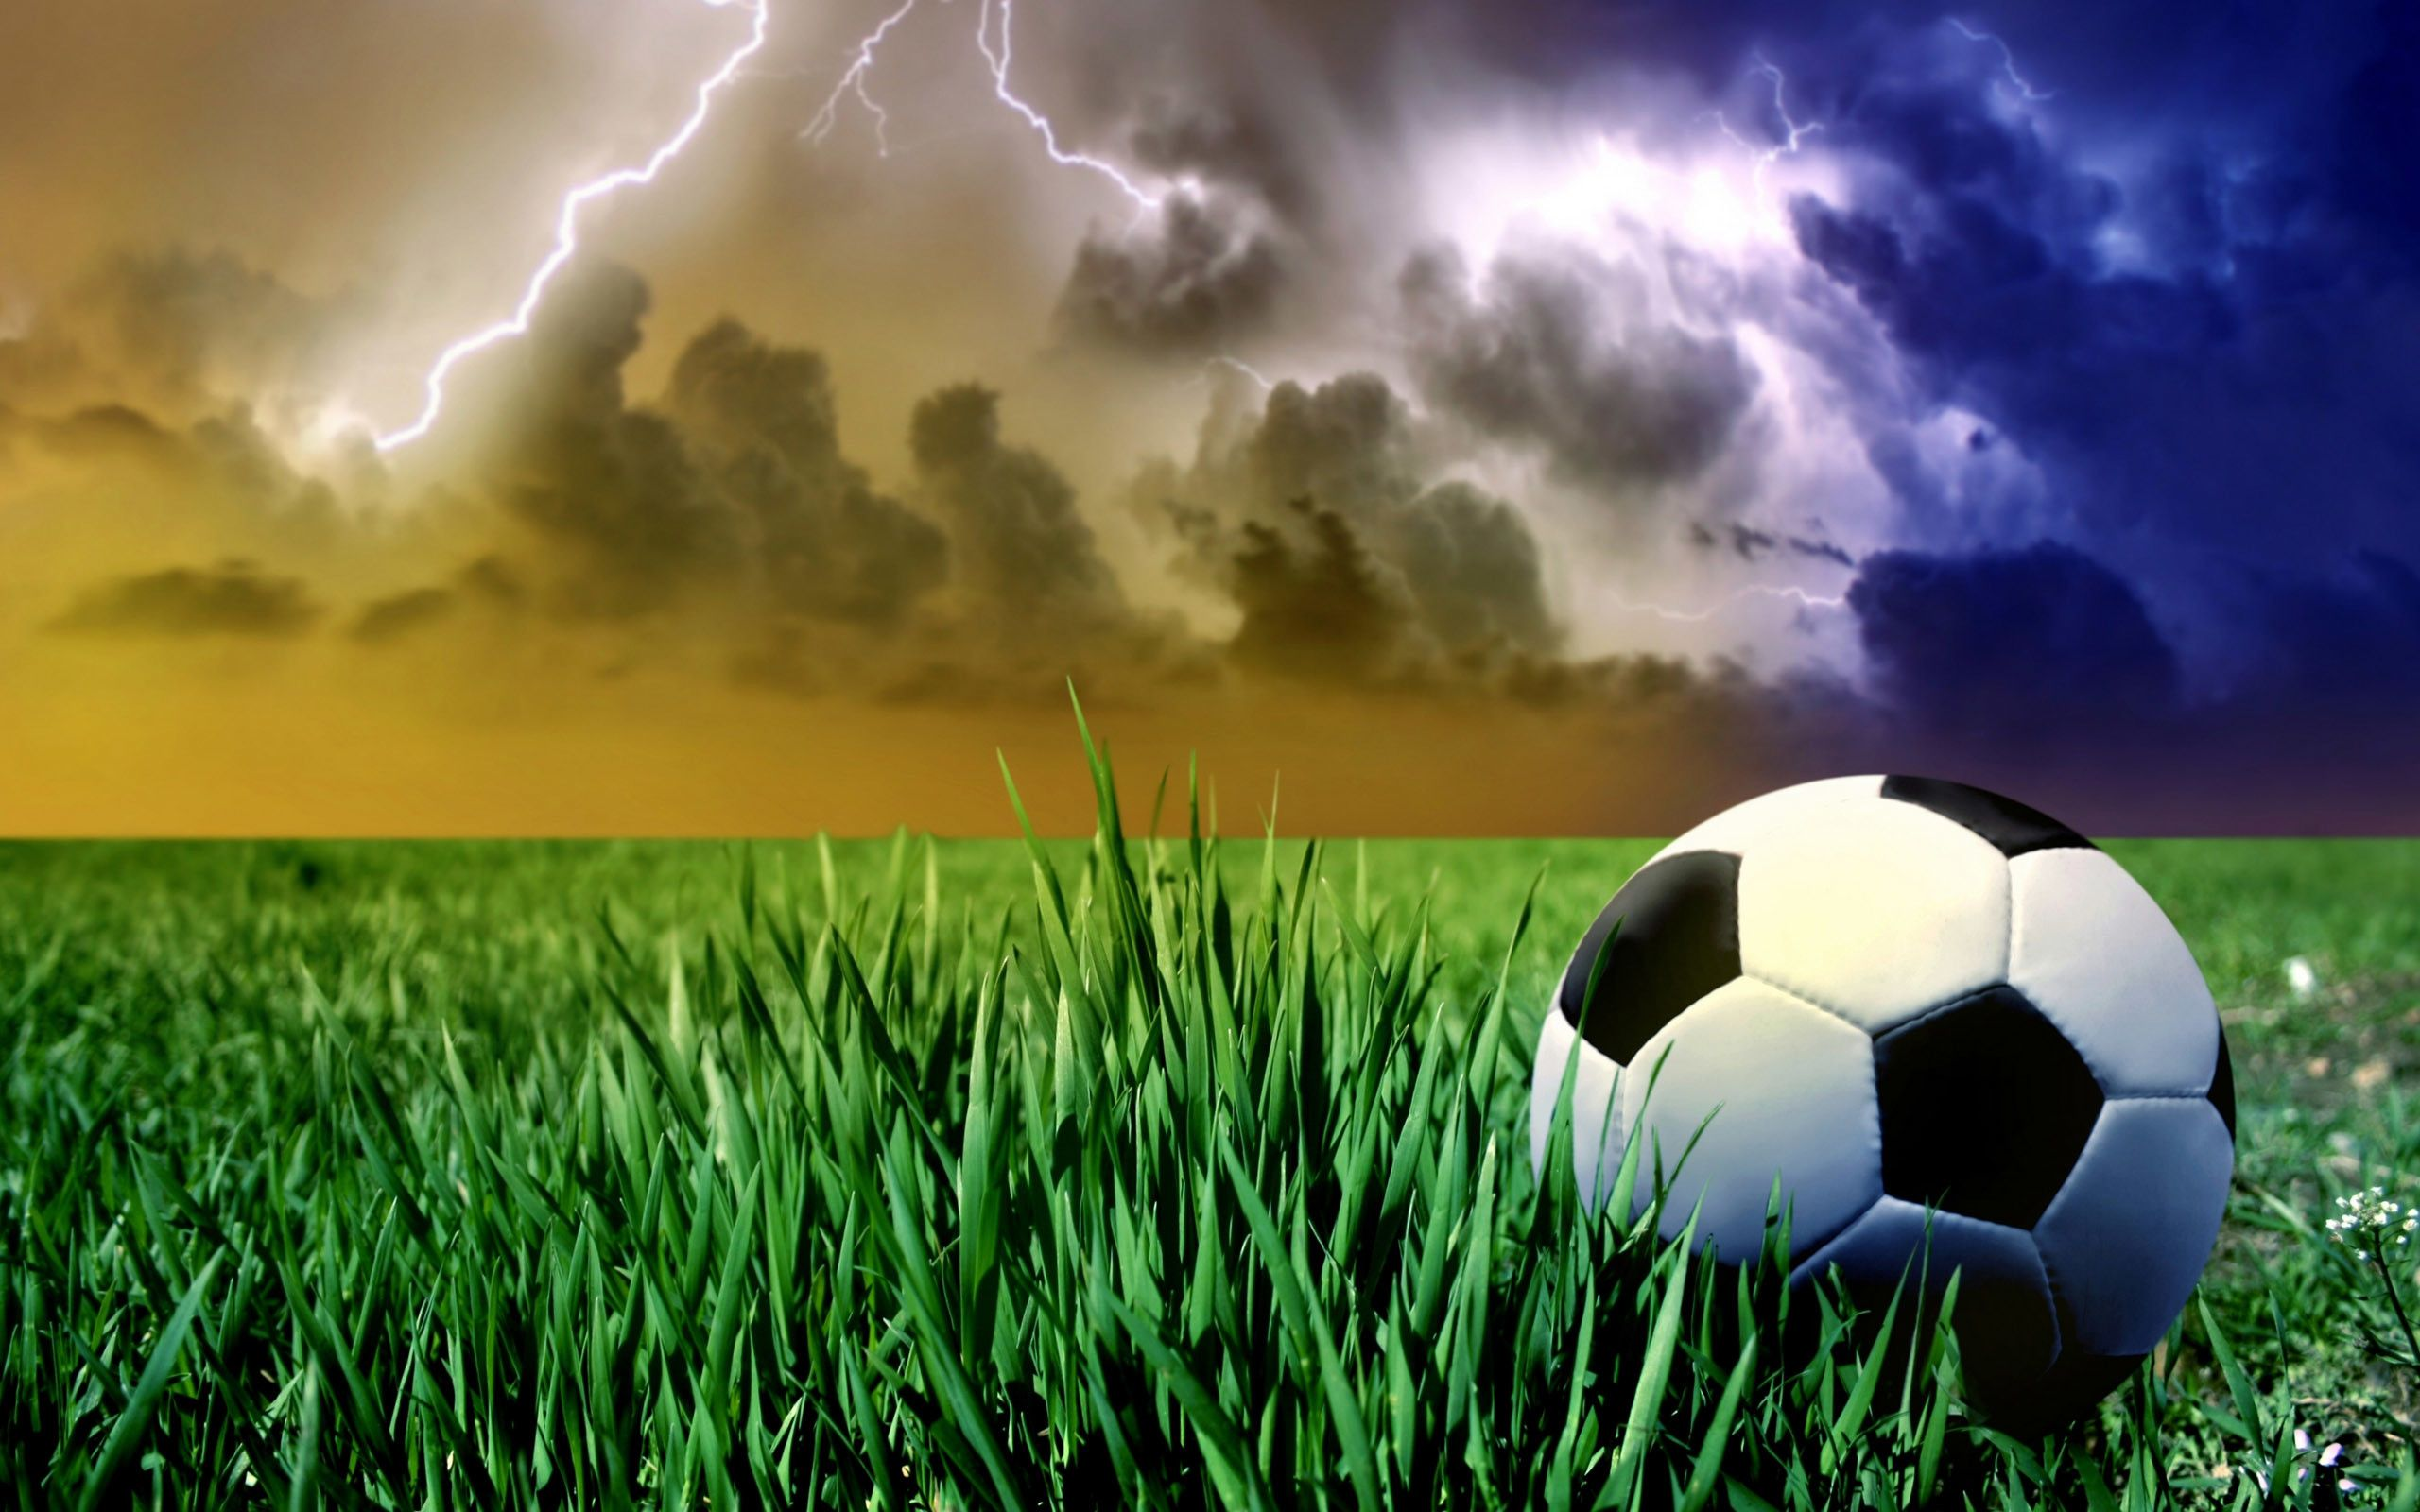 70 Cool Soccer Wallpapers On Wallpaperplay Sports Wallpapers Soccer Ball Soccer